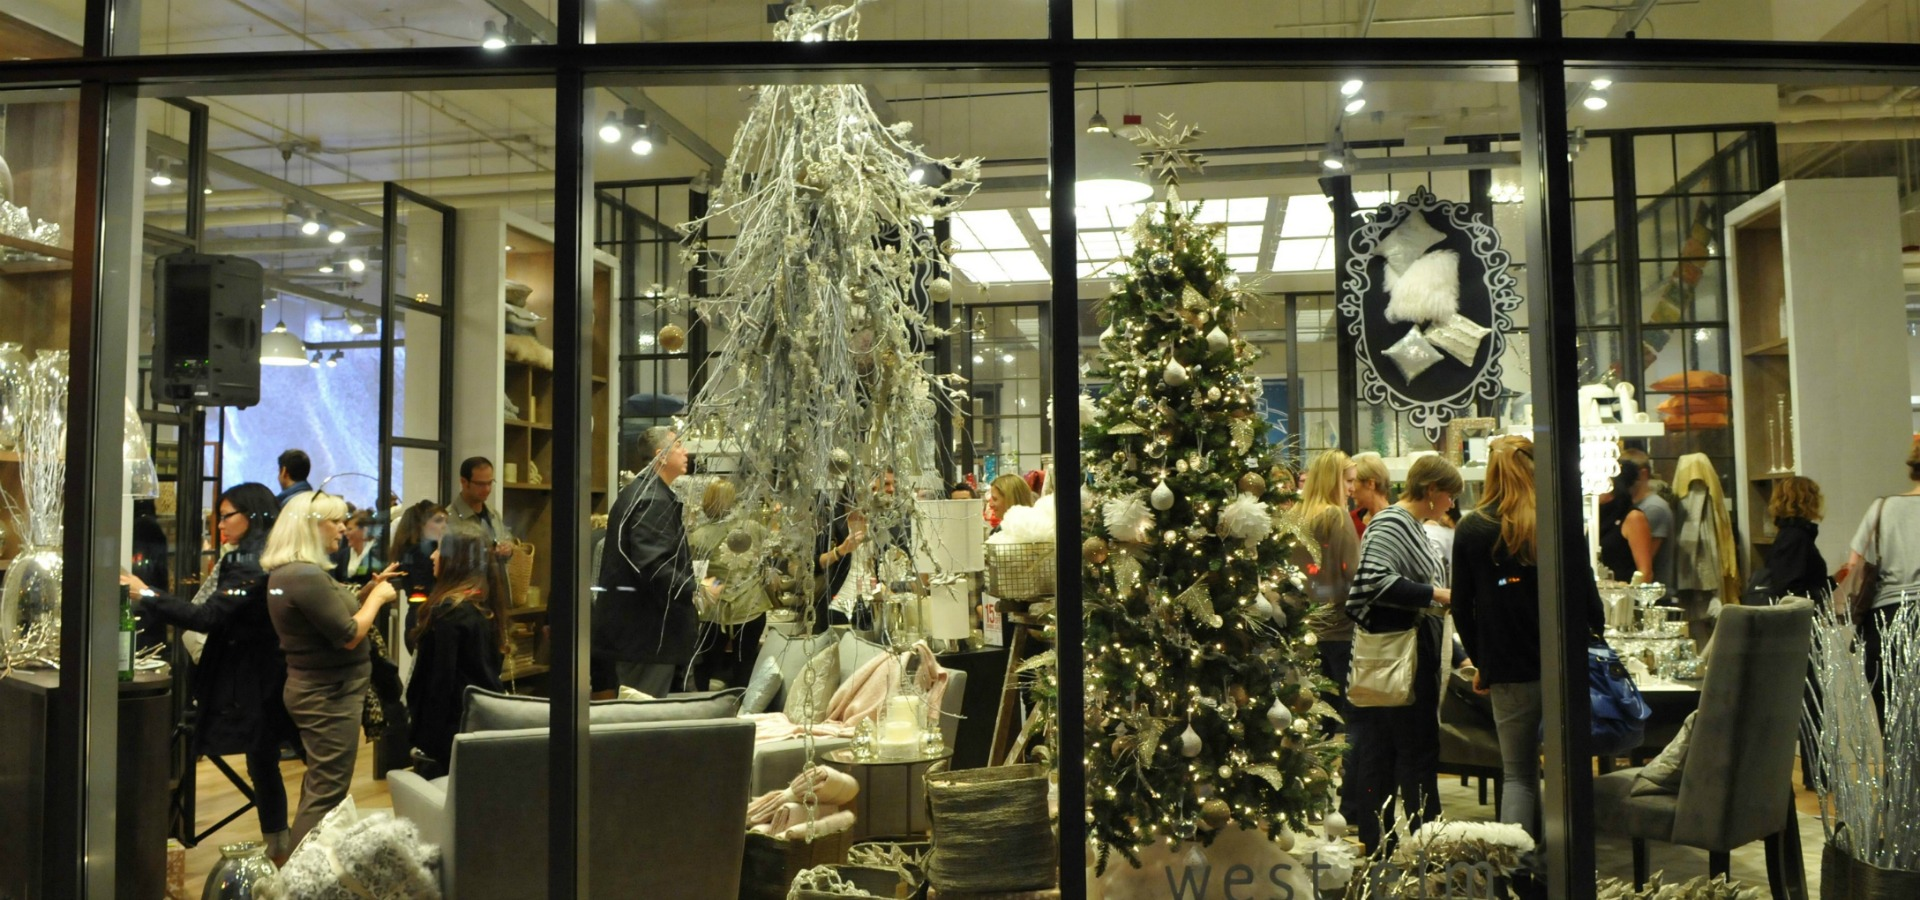 West Elm Christmas Display.West Elm Discover South Lake Union